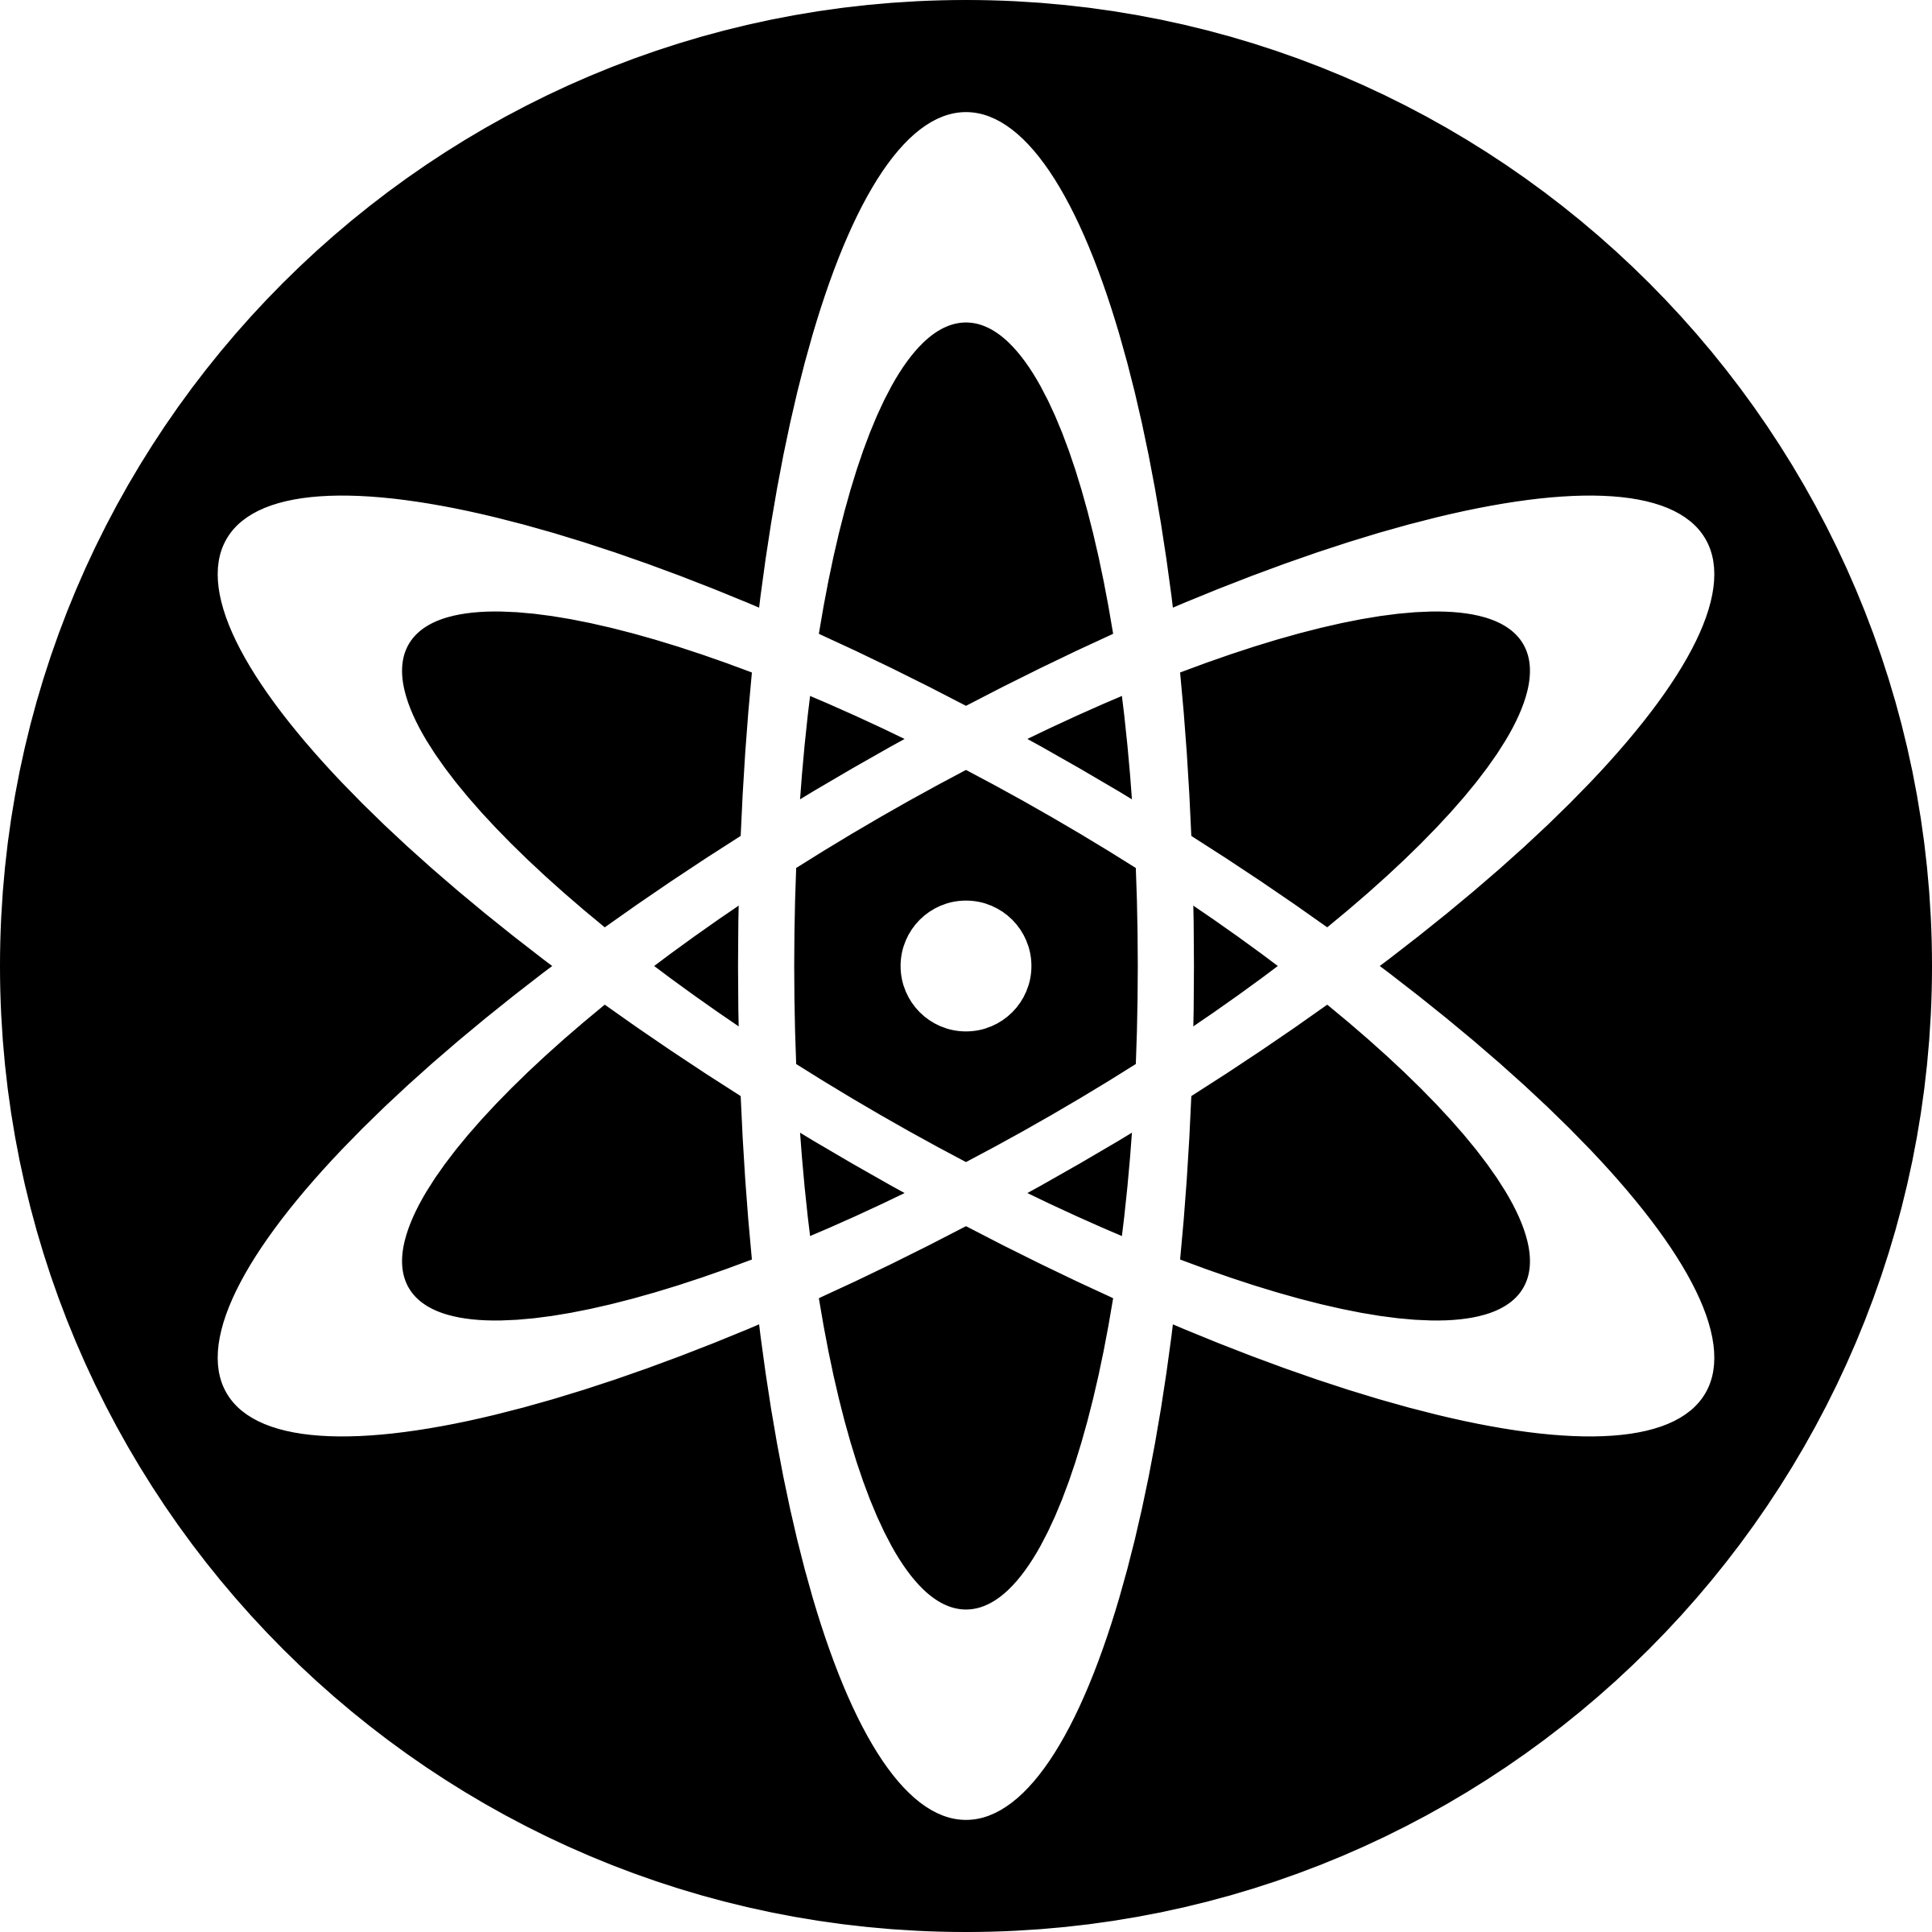 Energy clipart atom. Icon big image png